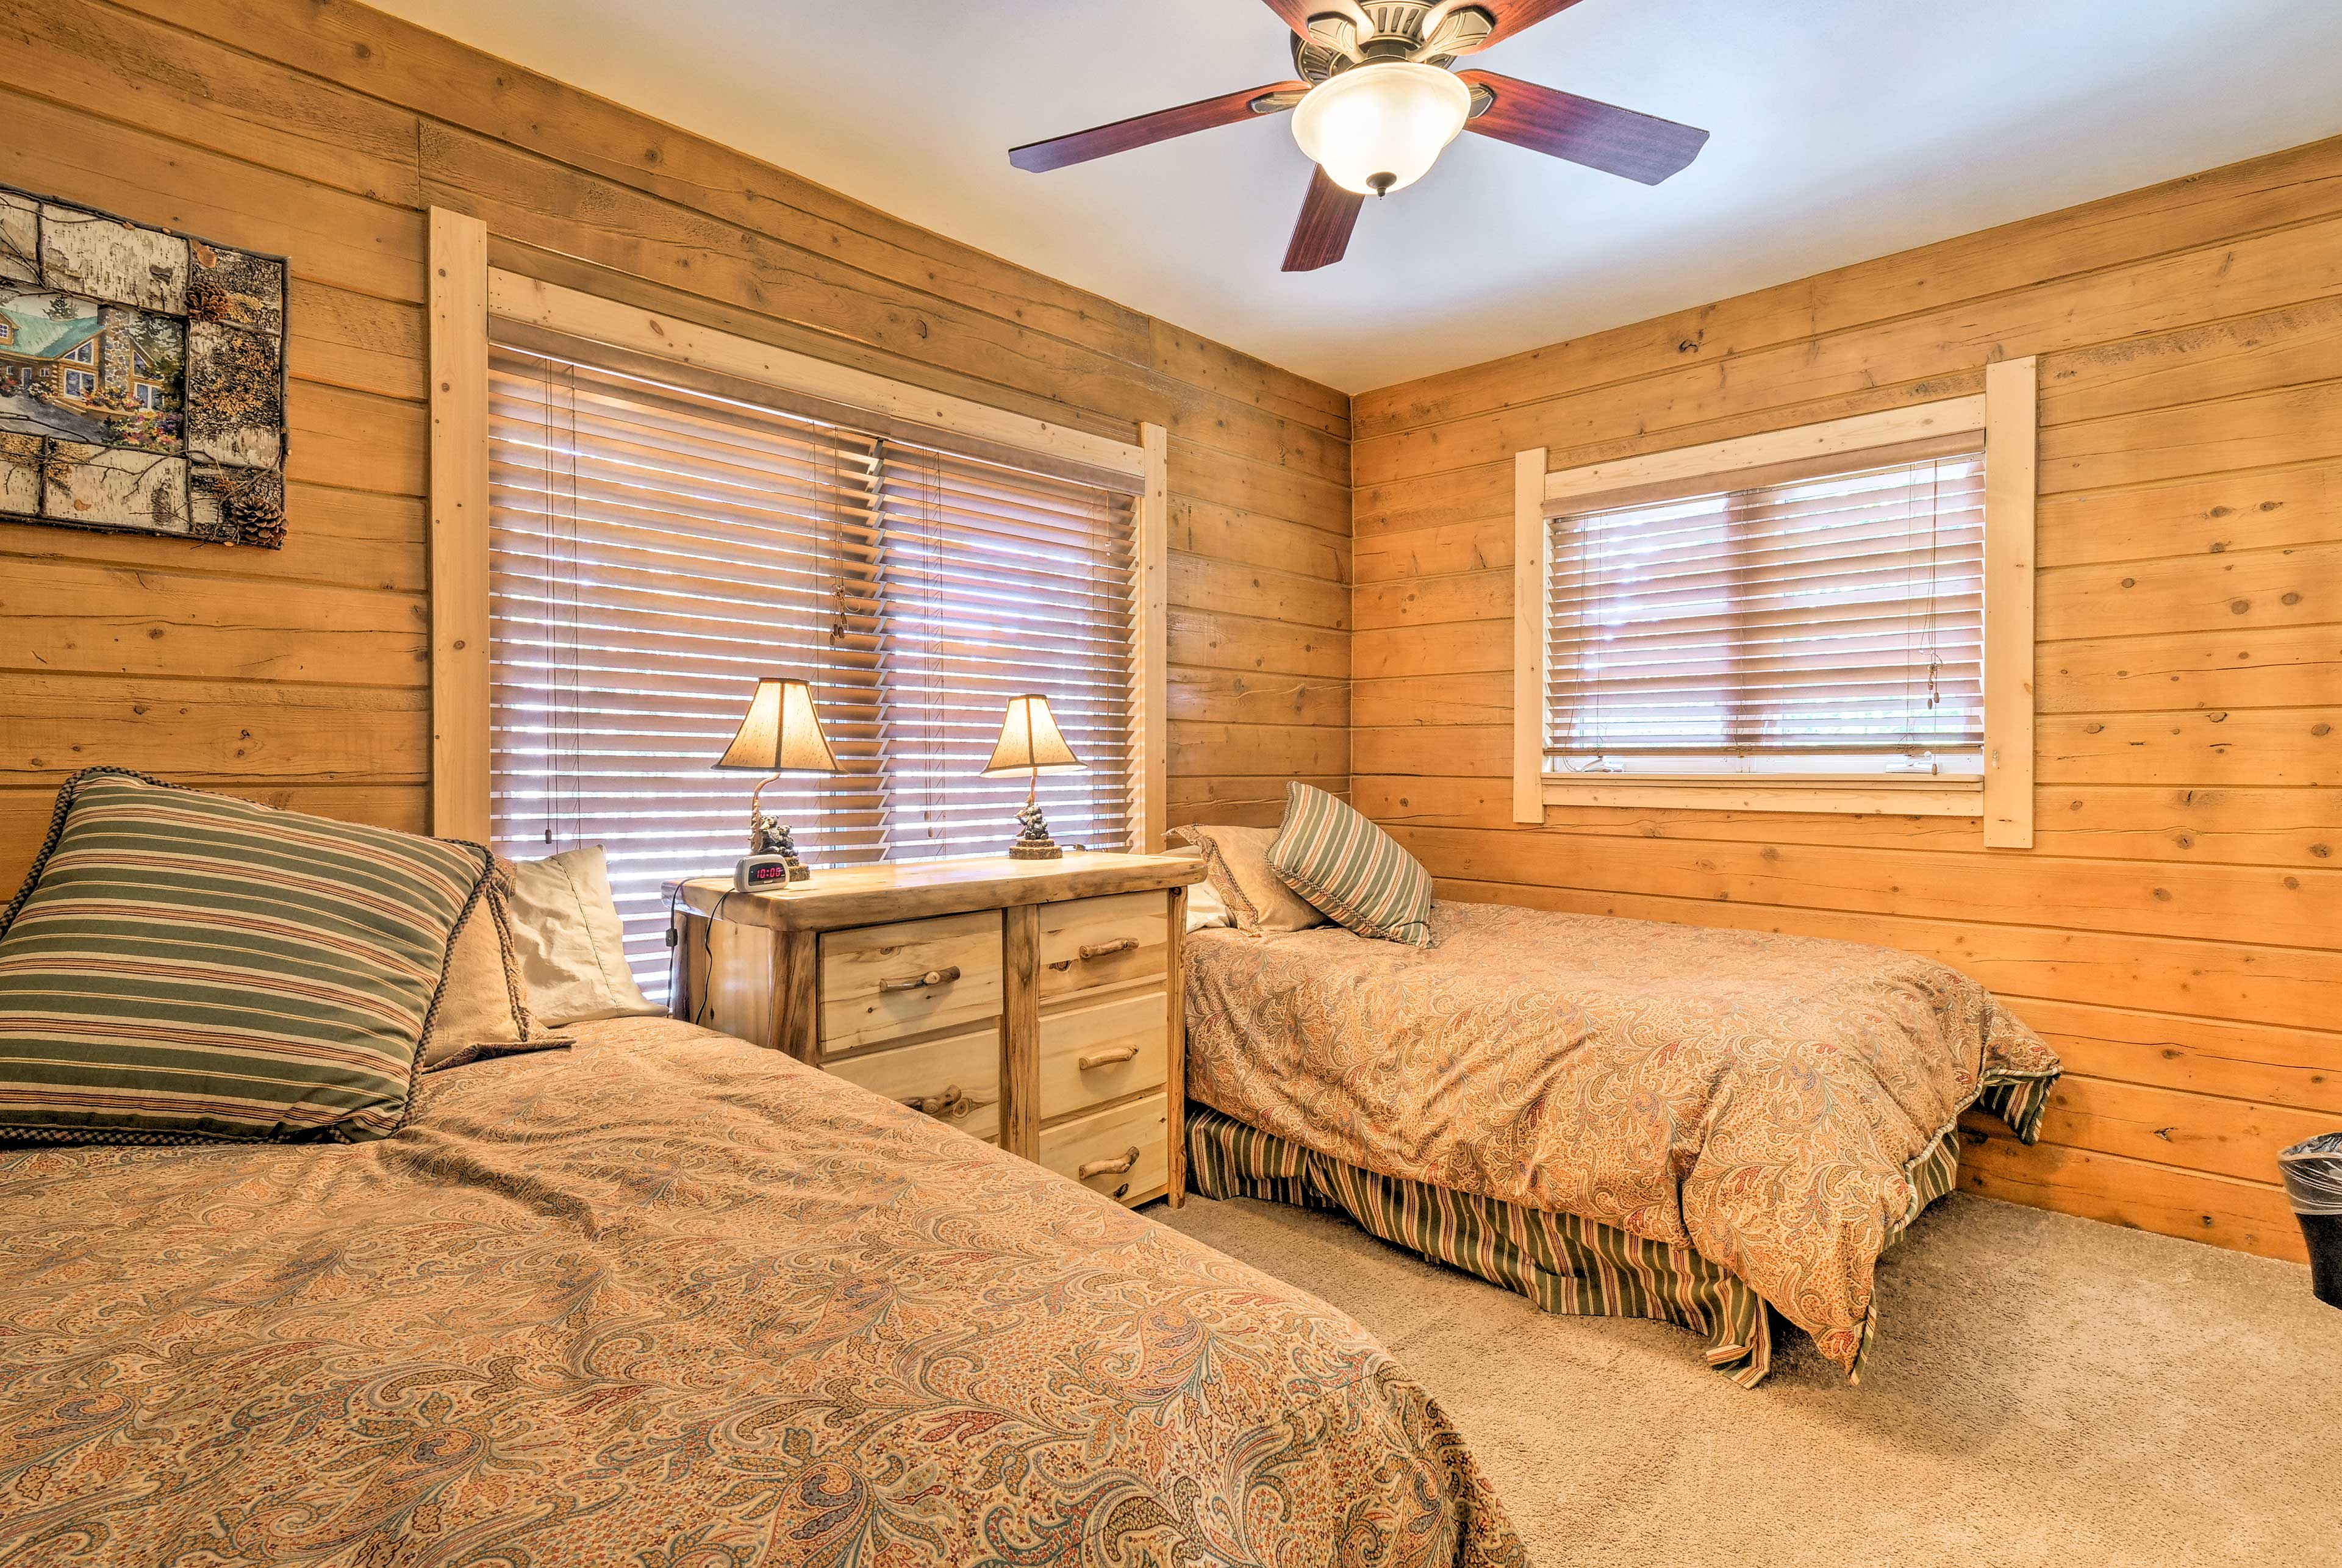 Four can share this bedroom, complete with 2 full-sized beds.